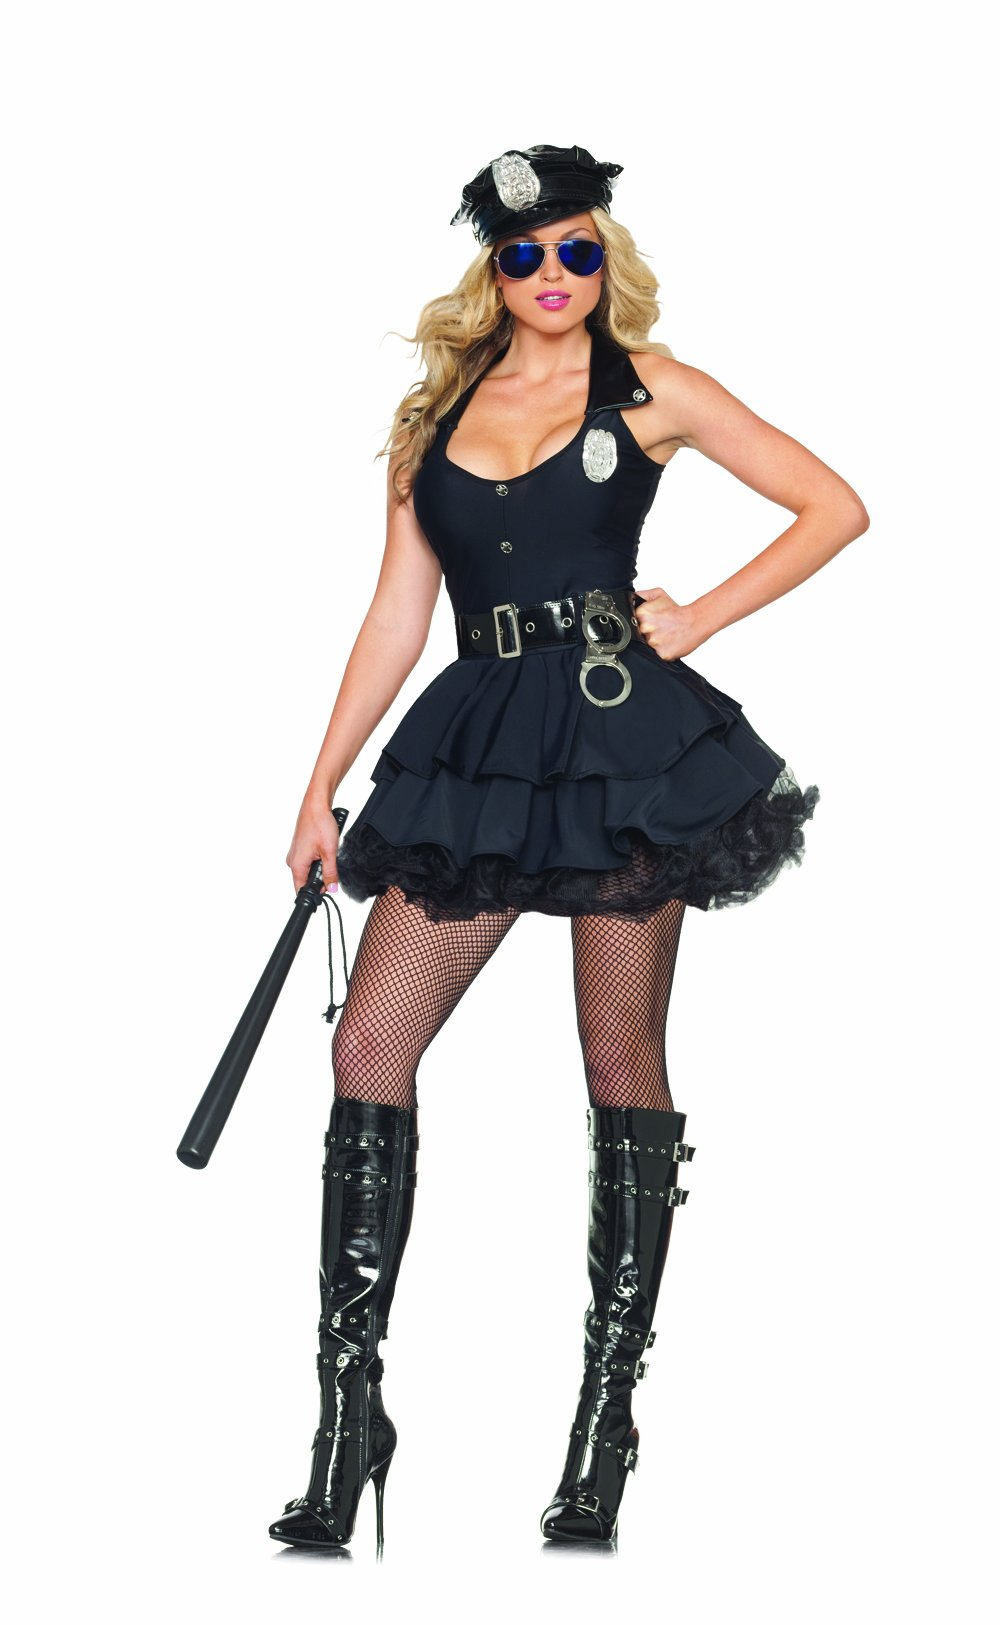 Party King Women's Sexy Cop 5 Piece Costume Dress Set with Hat, Black, Small